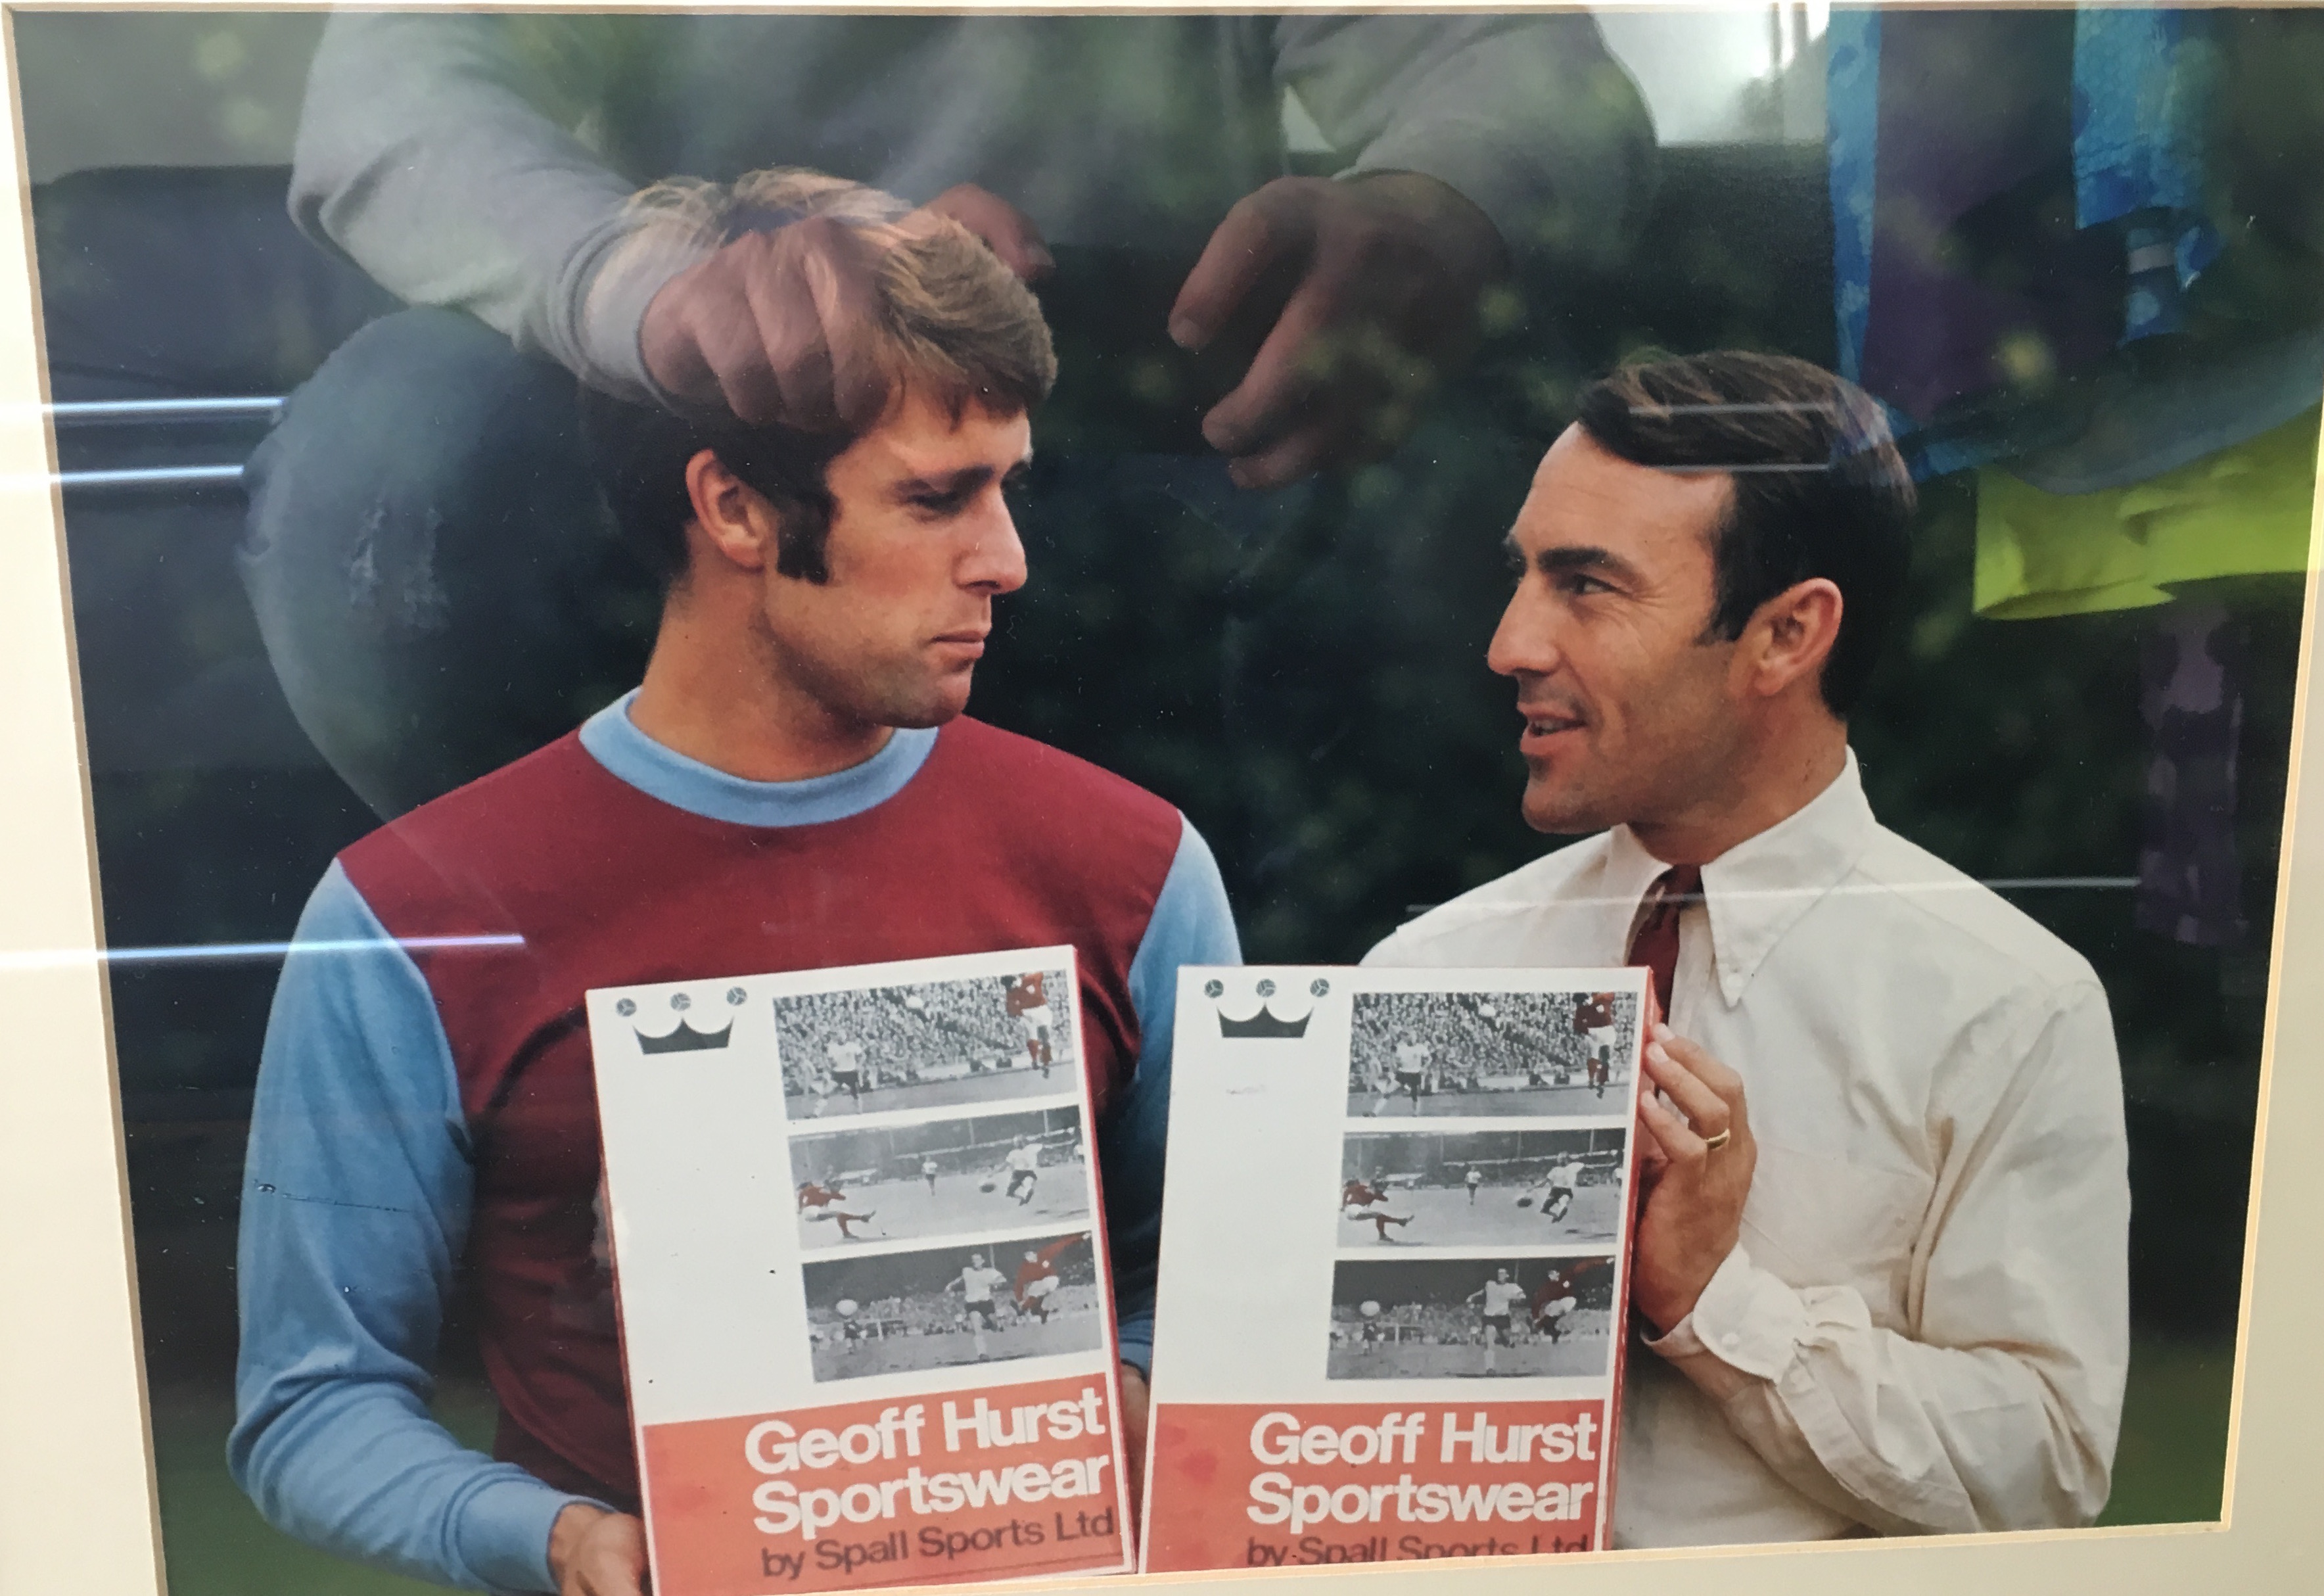 Geoff Hurst had his entire sportswear range manufactured by Spall and in this picture you can see the kits themselves being displayed